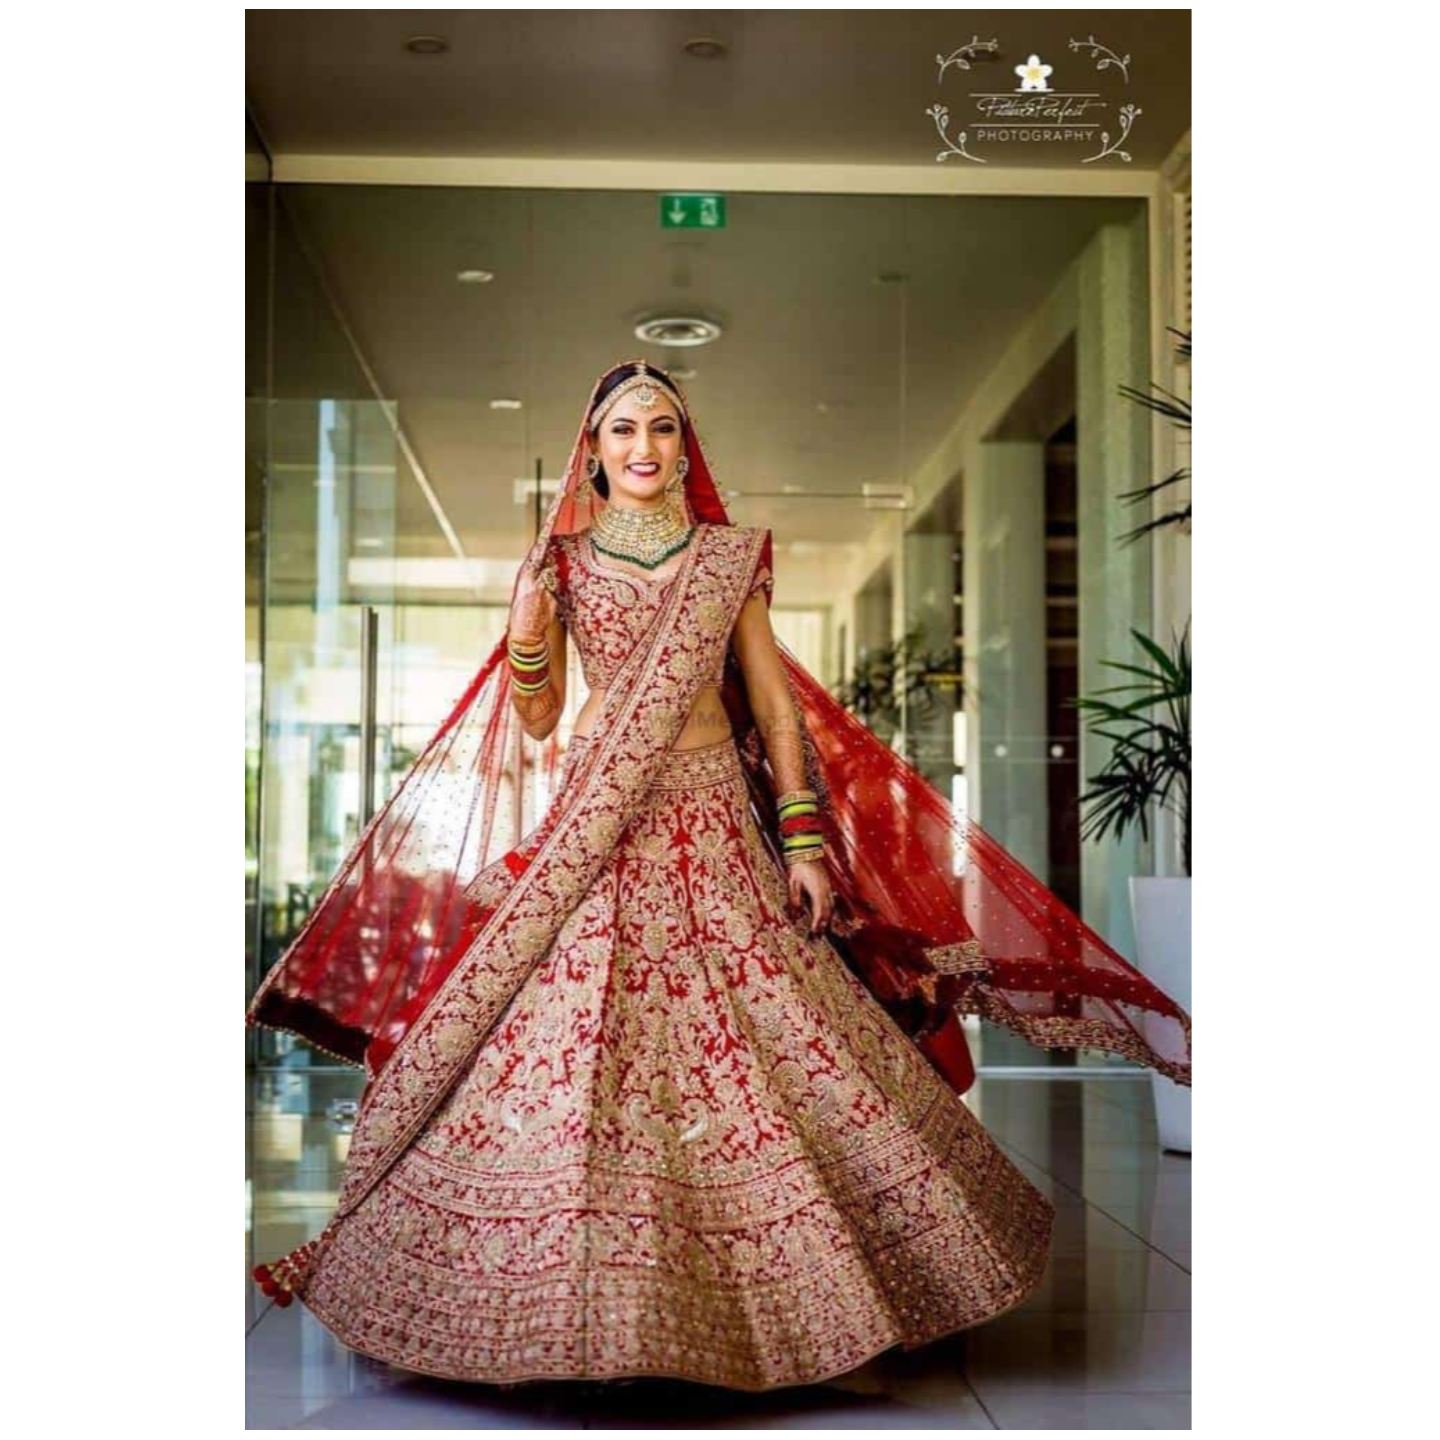 Bridal heavy embroidery lehenga choli in heavy payor nailon silk